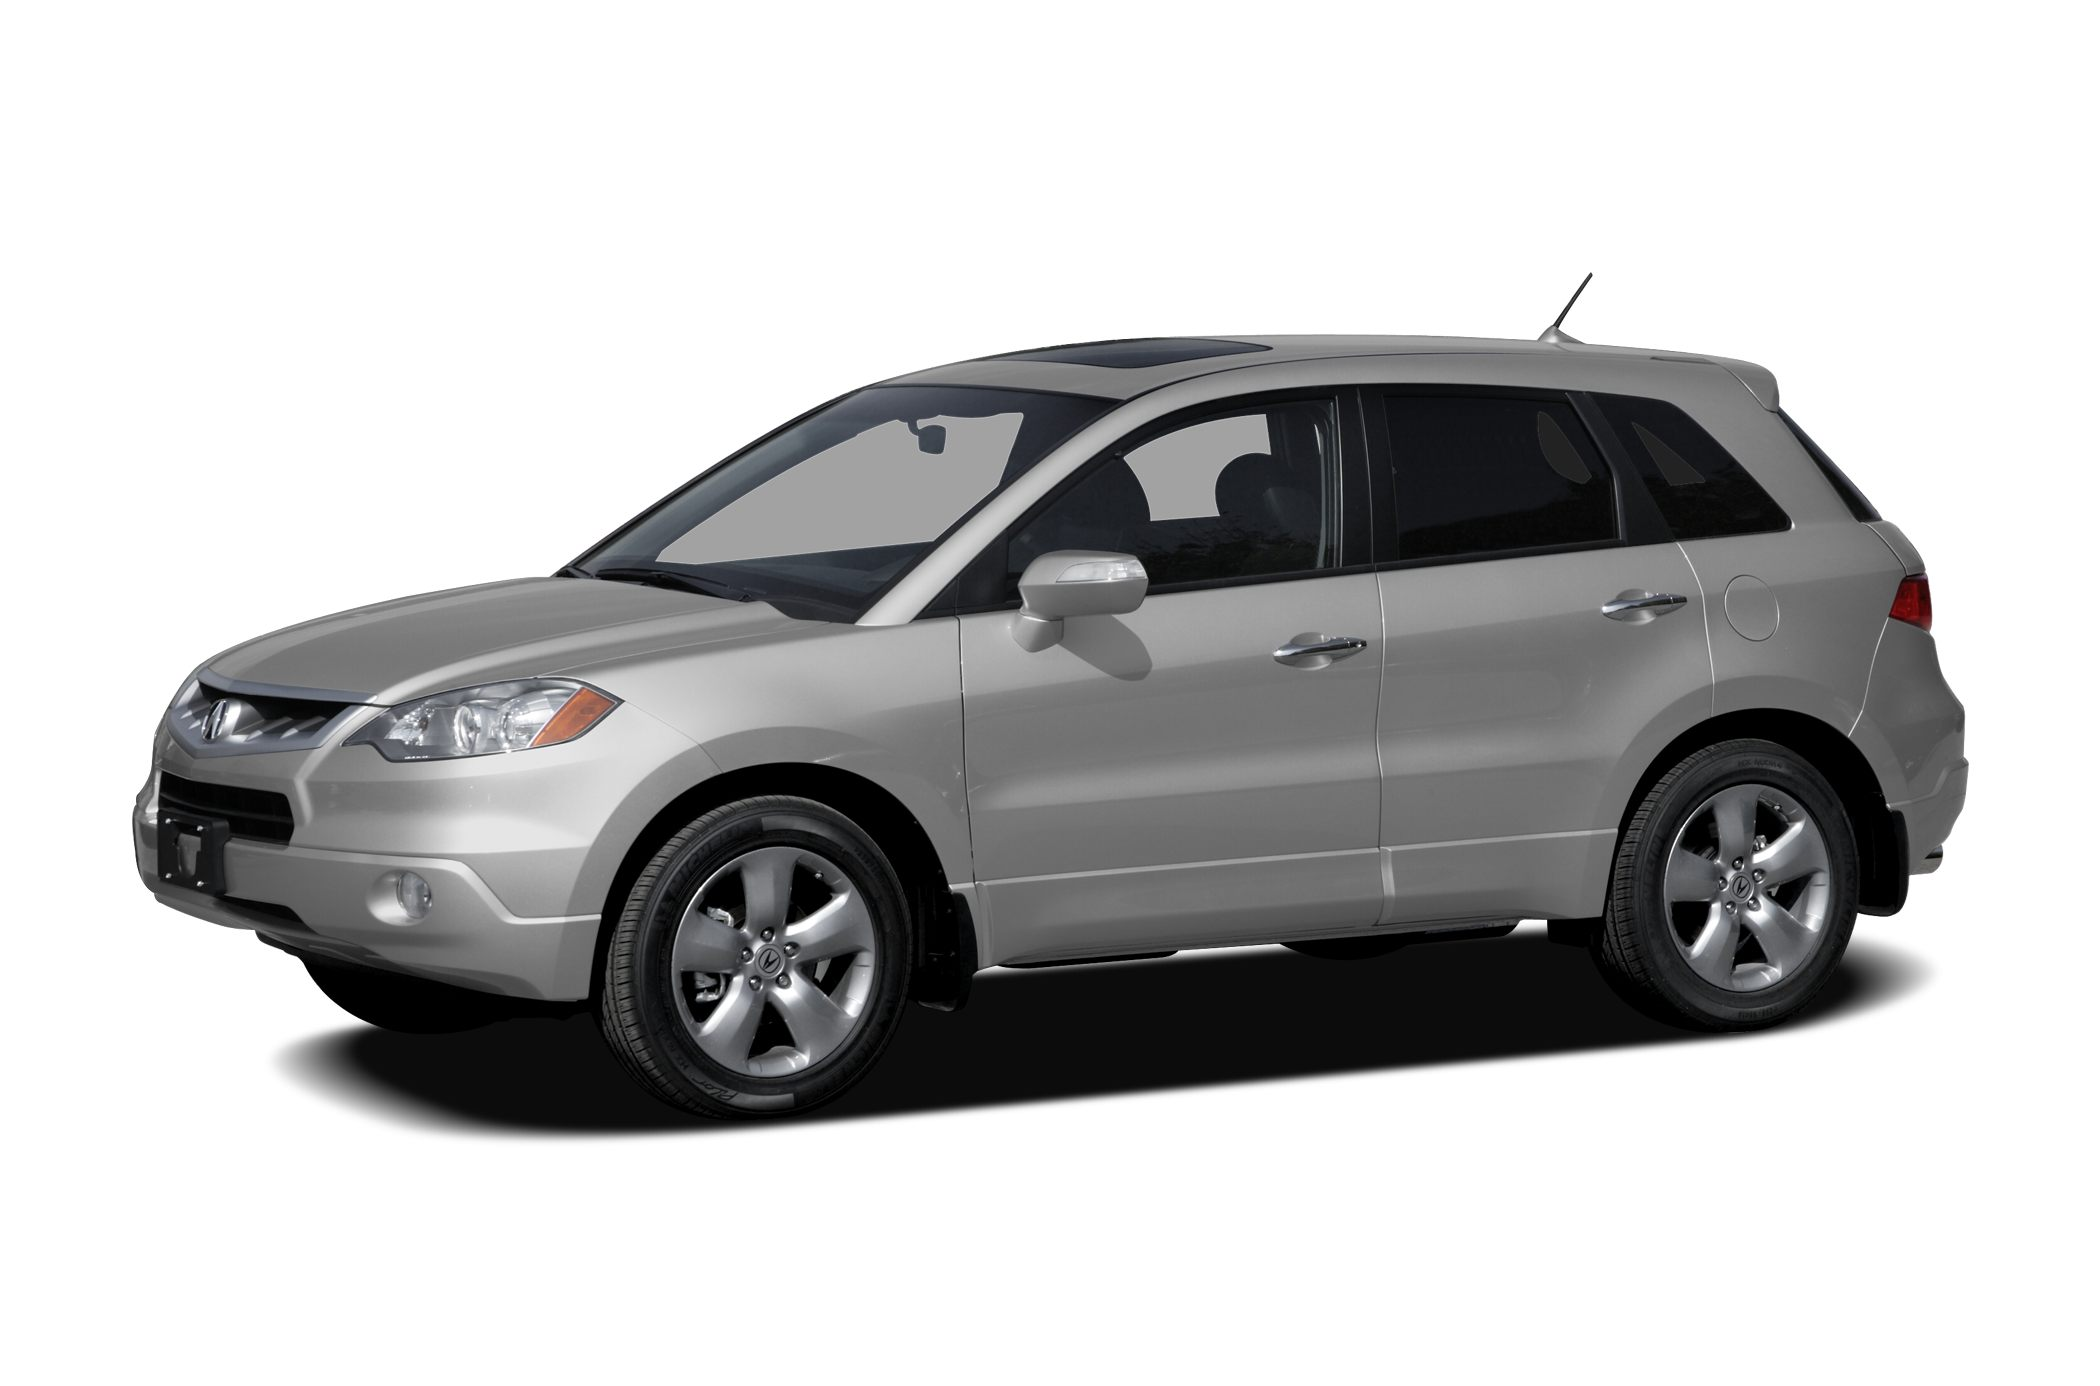 2009 Acura RDX Technology Turbo Navigation Who could say no to a truly wonderful SUV like this f